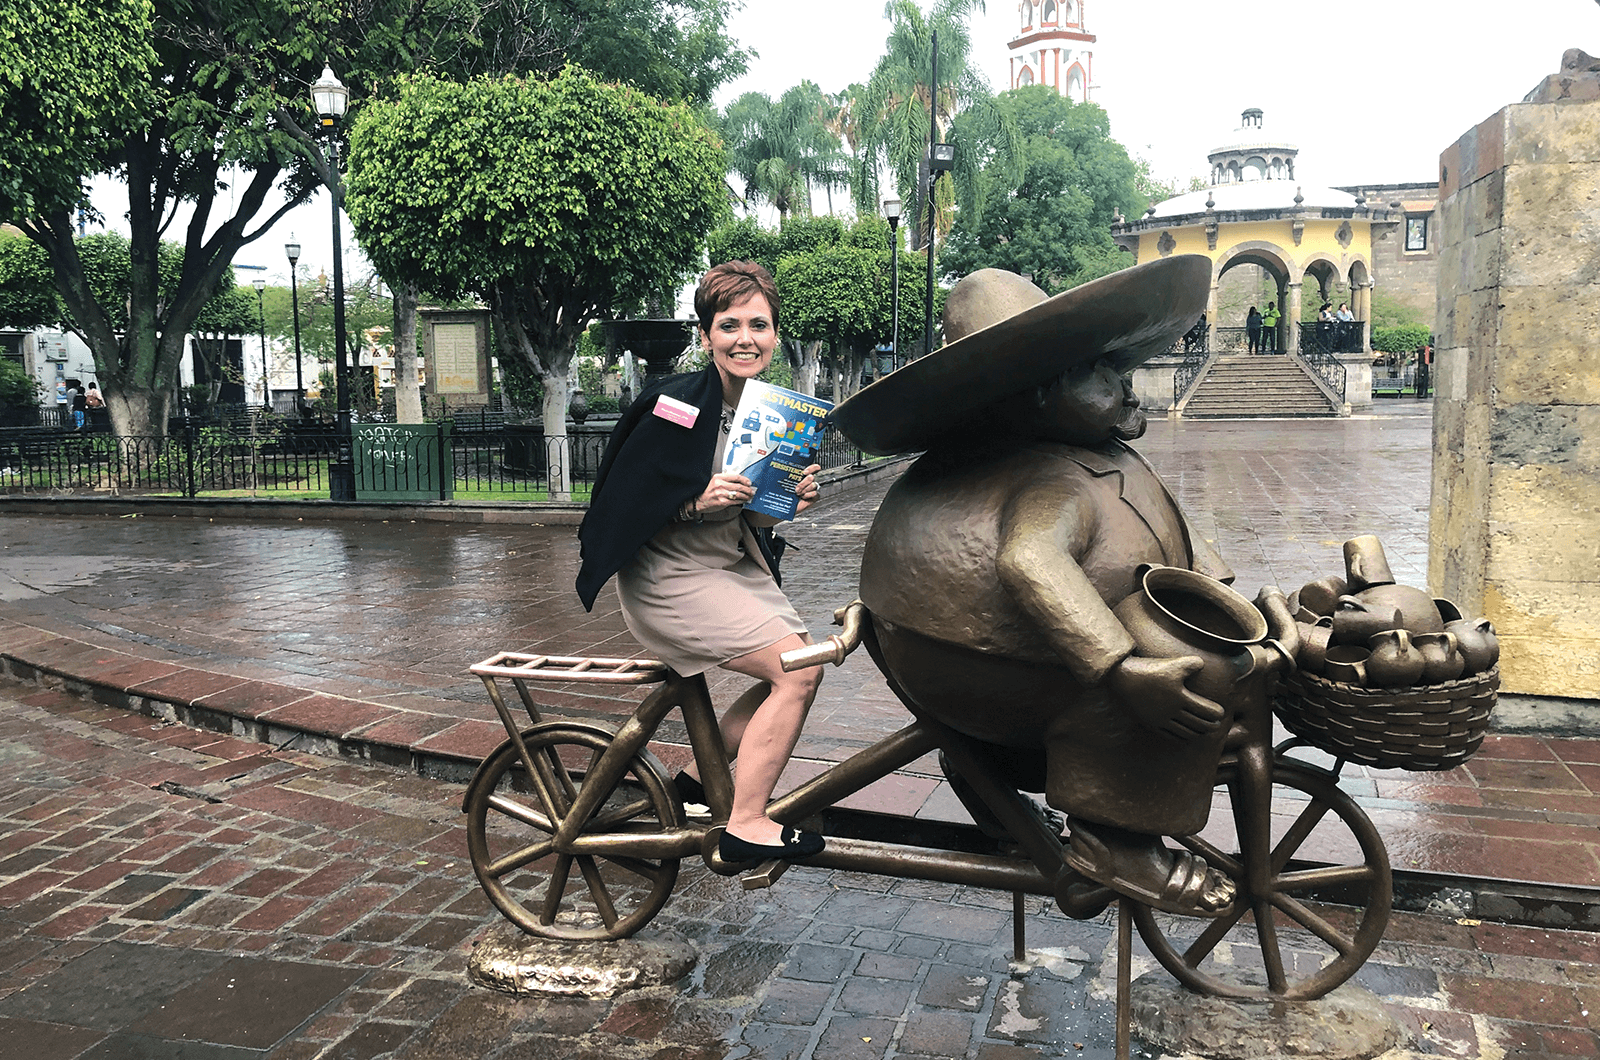 Maria Martinez, DTM, of Lakeland, Florida, poses on a statue of a peddler on a bicycle in Guadalajara, Mexico.